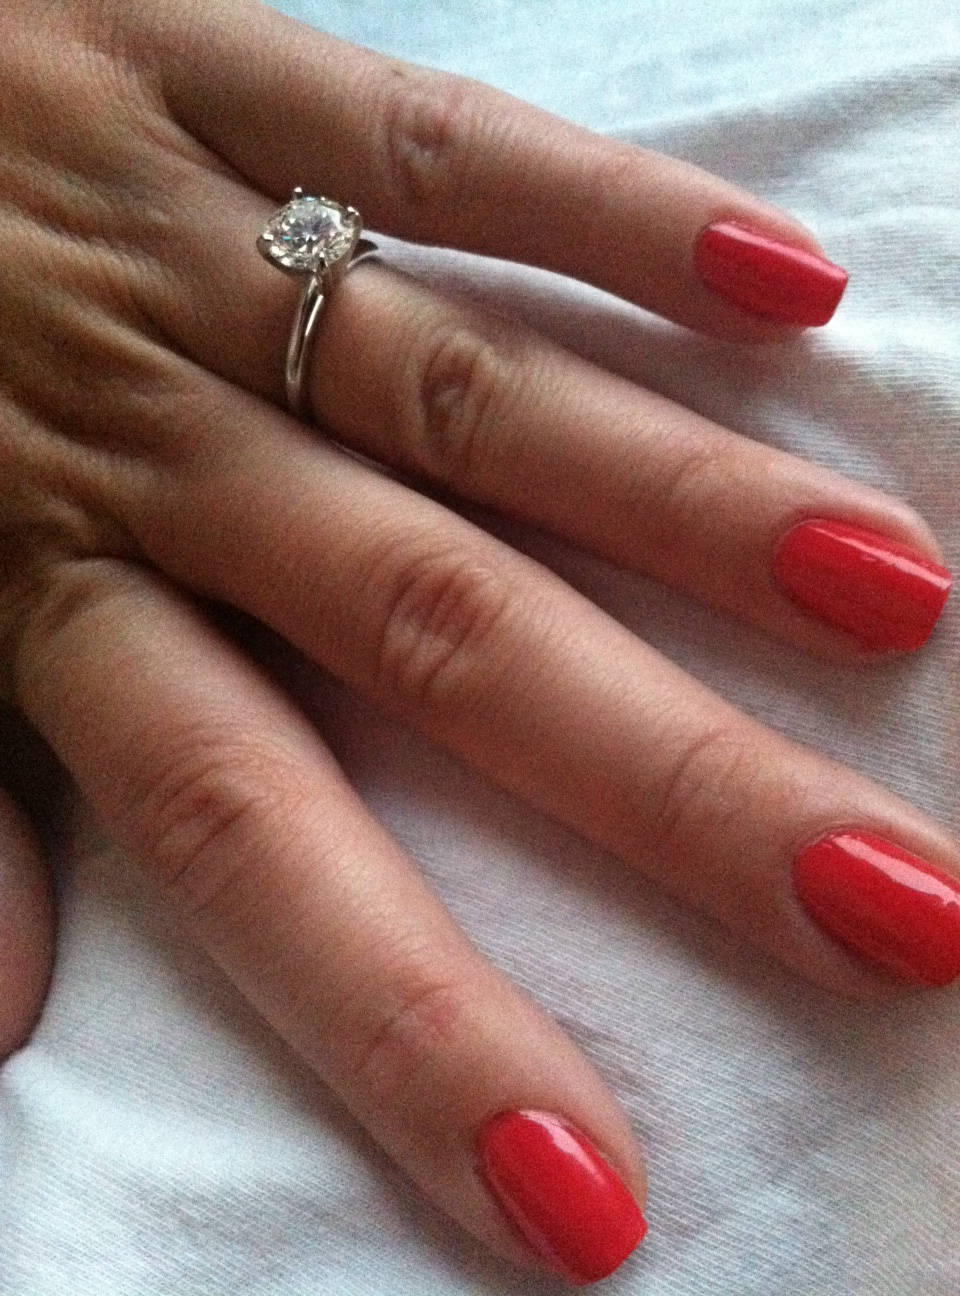 Engagement Ring Nails | Born to Be a Bride